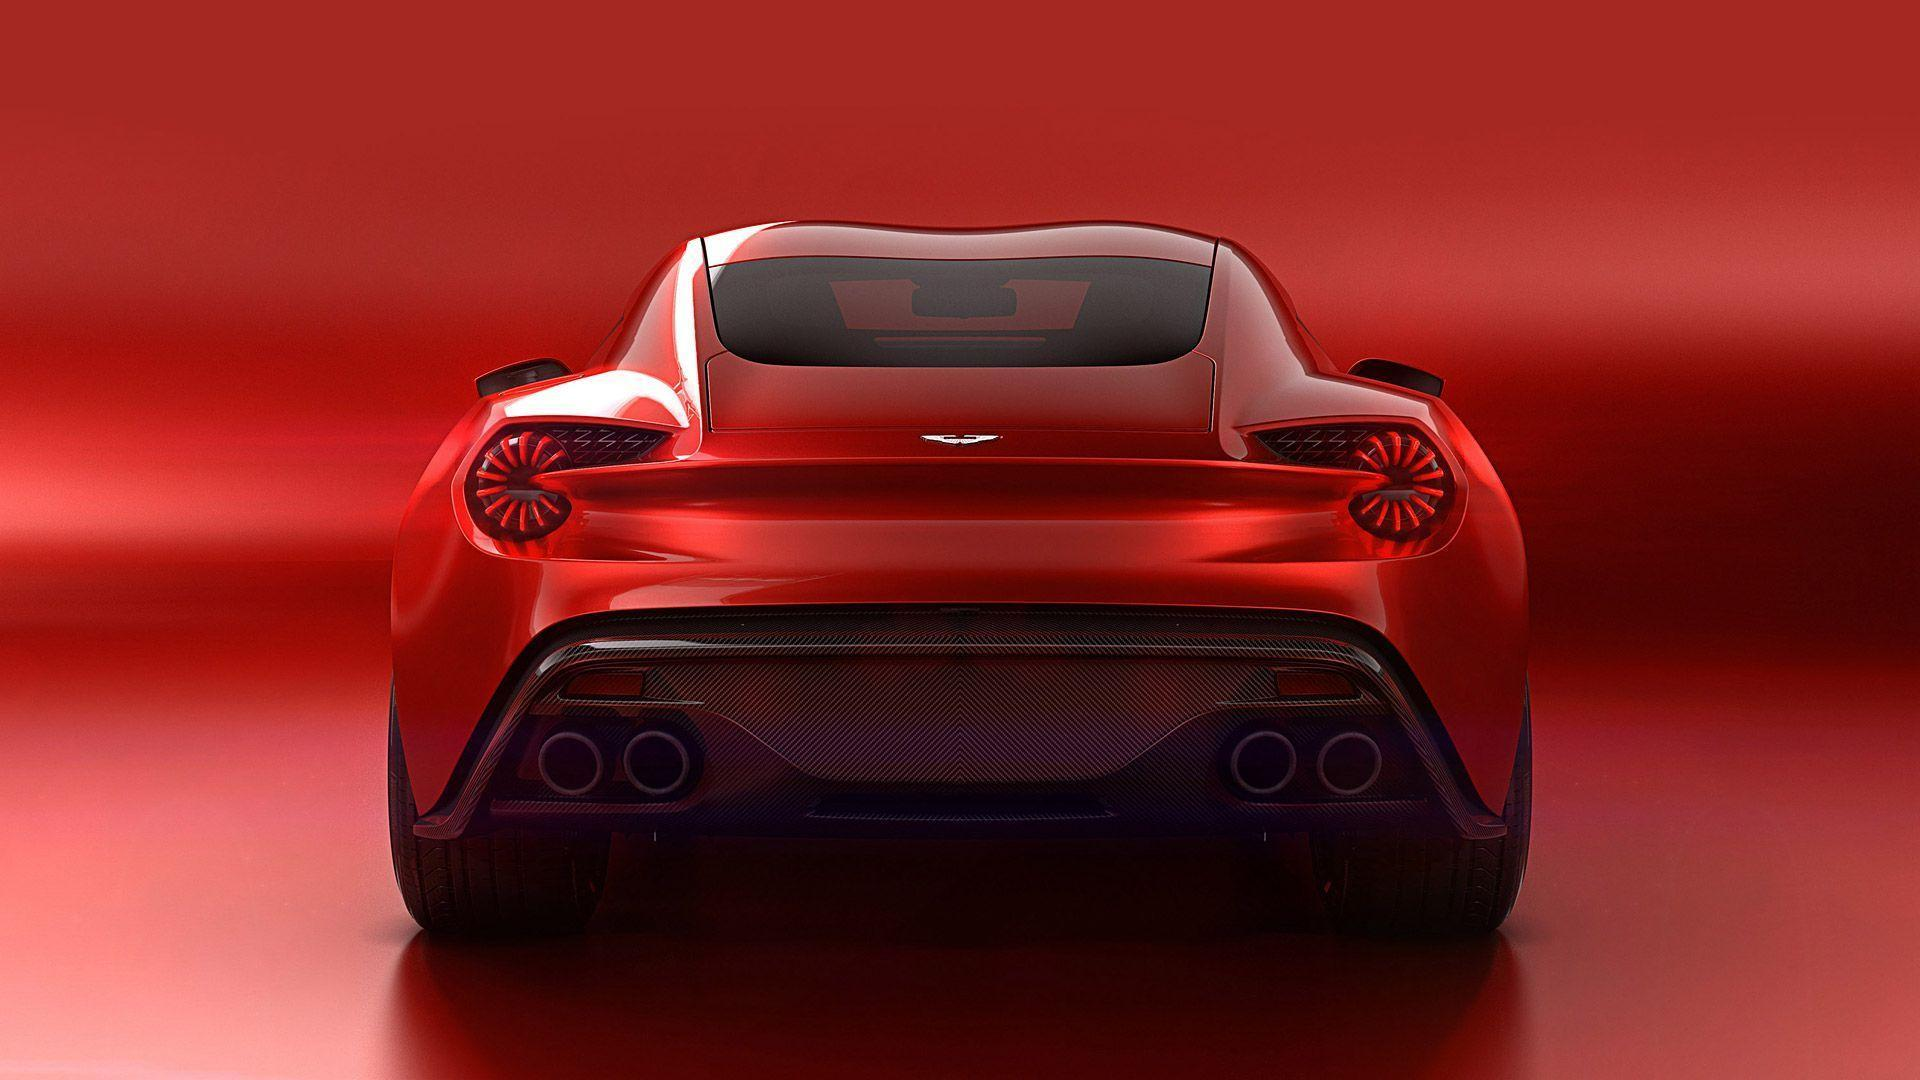 2016 Aston Martin Vanquish Zagato Concept Wallpapers